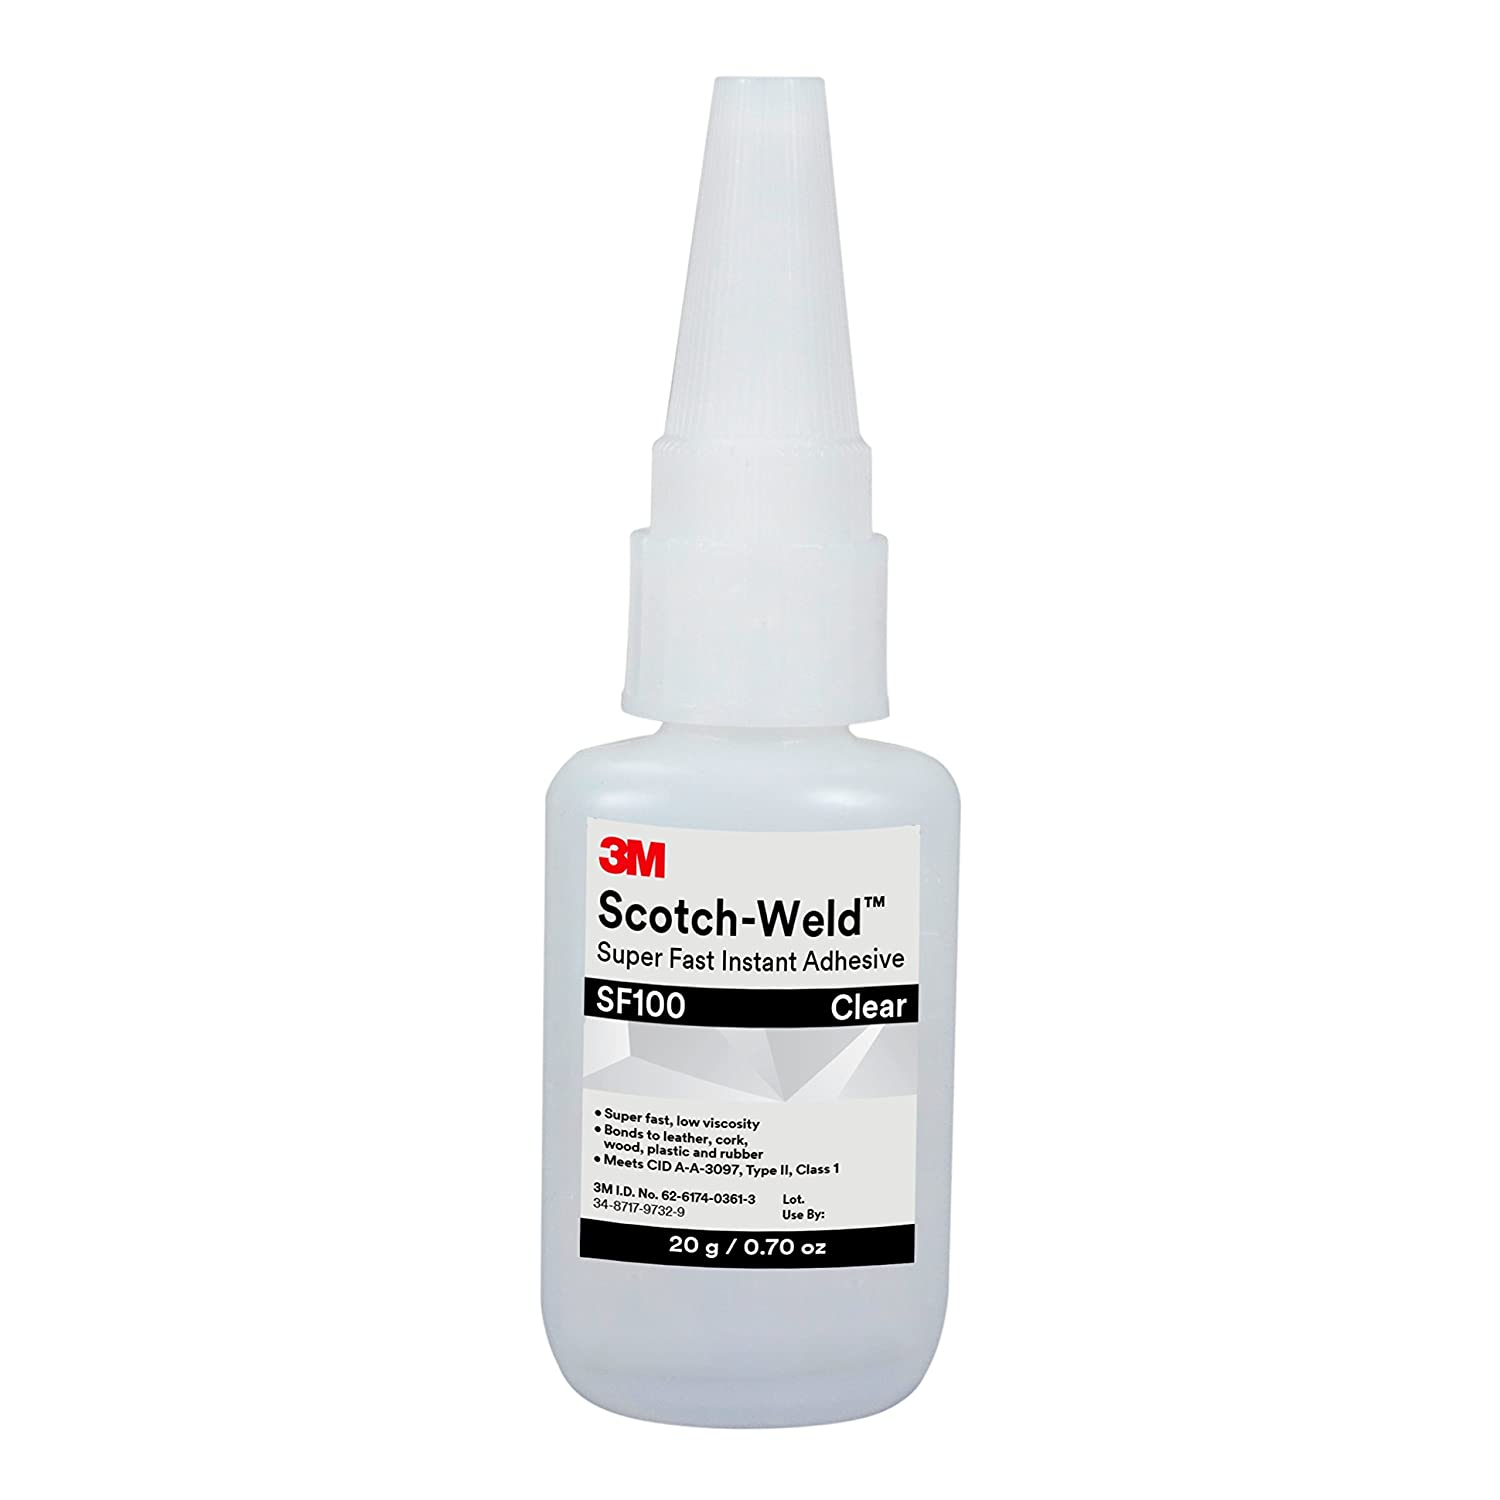 3M Scotch-Weld Super Fast Instant Adhesive SF100, Clear